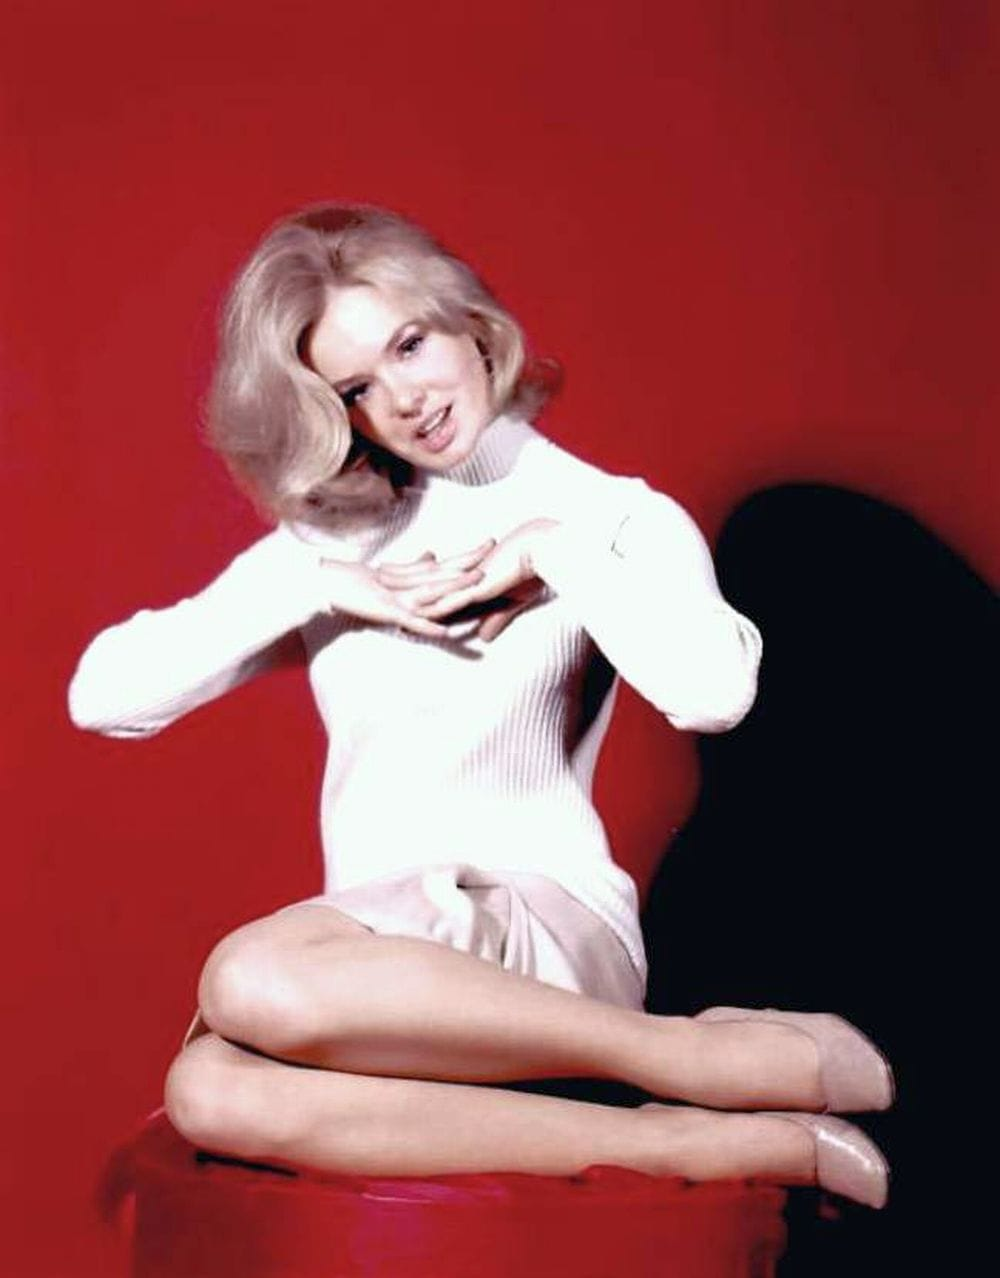 joey heatherton video